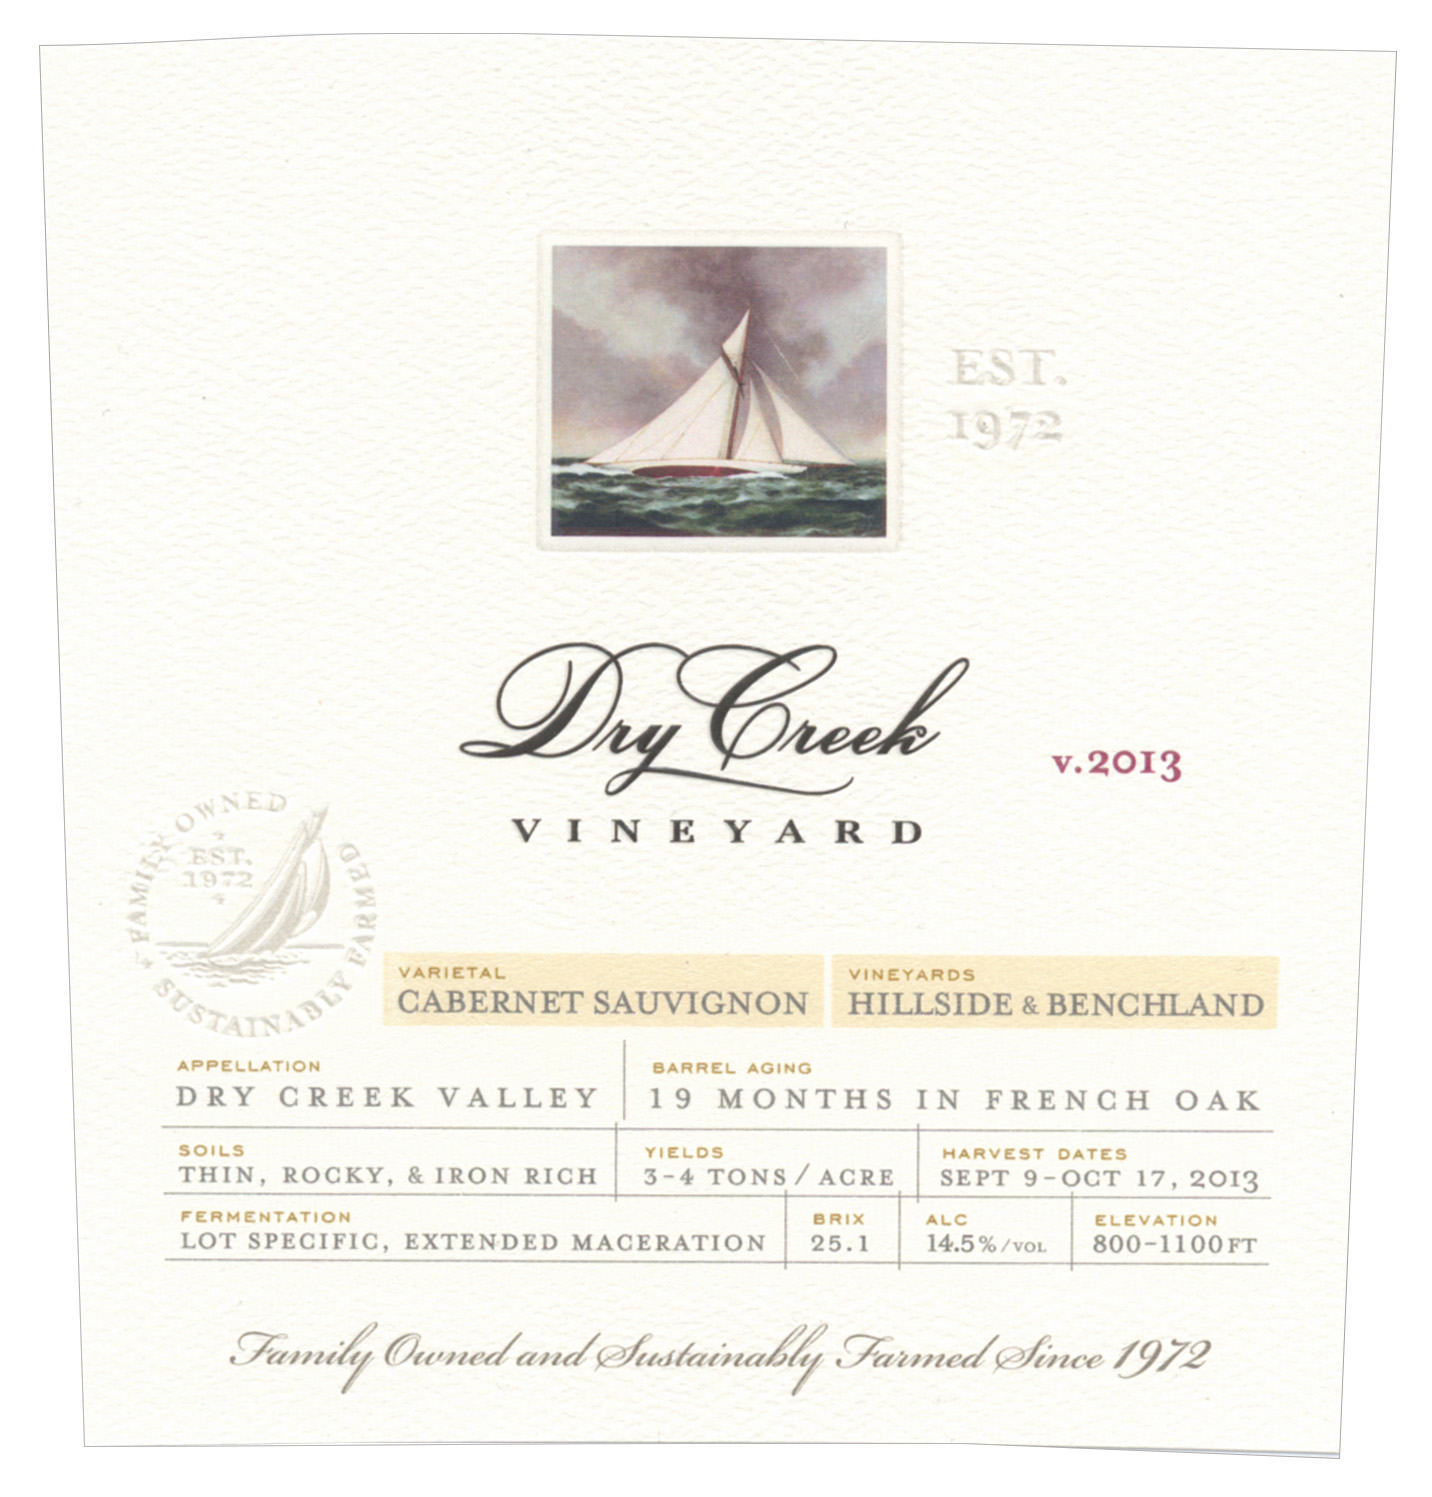 Dry Creek Vineyard Cabernet Sauvignon Hillside and Benchland Vineyards 375 ml